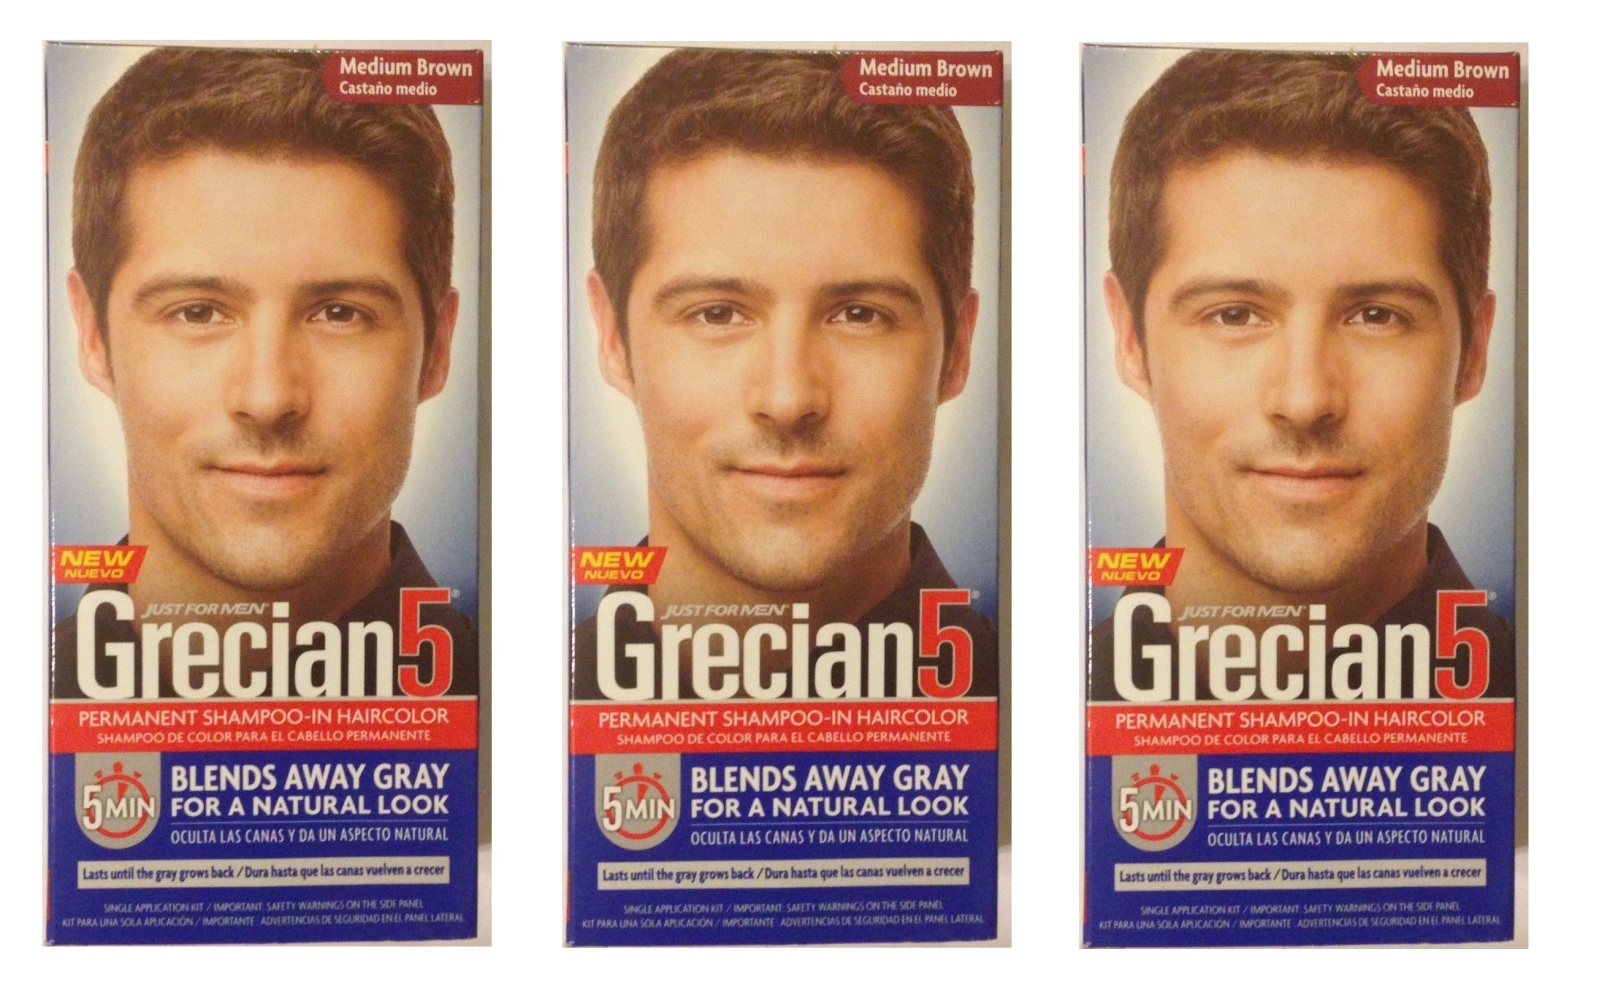 Just For Men Grecian 5 Permanent Shampoo In Haircolor Medium Brown